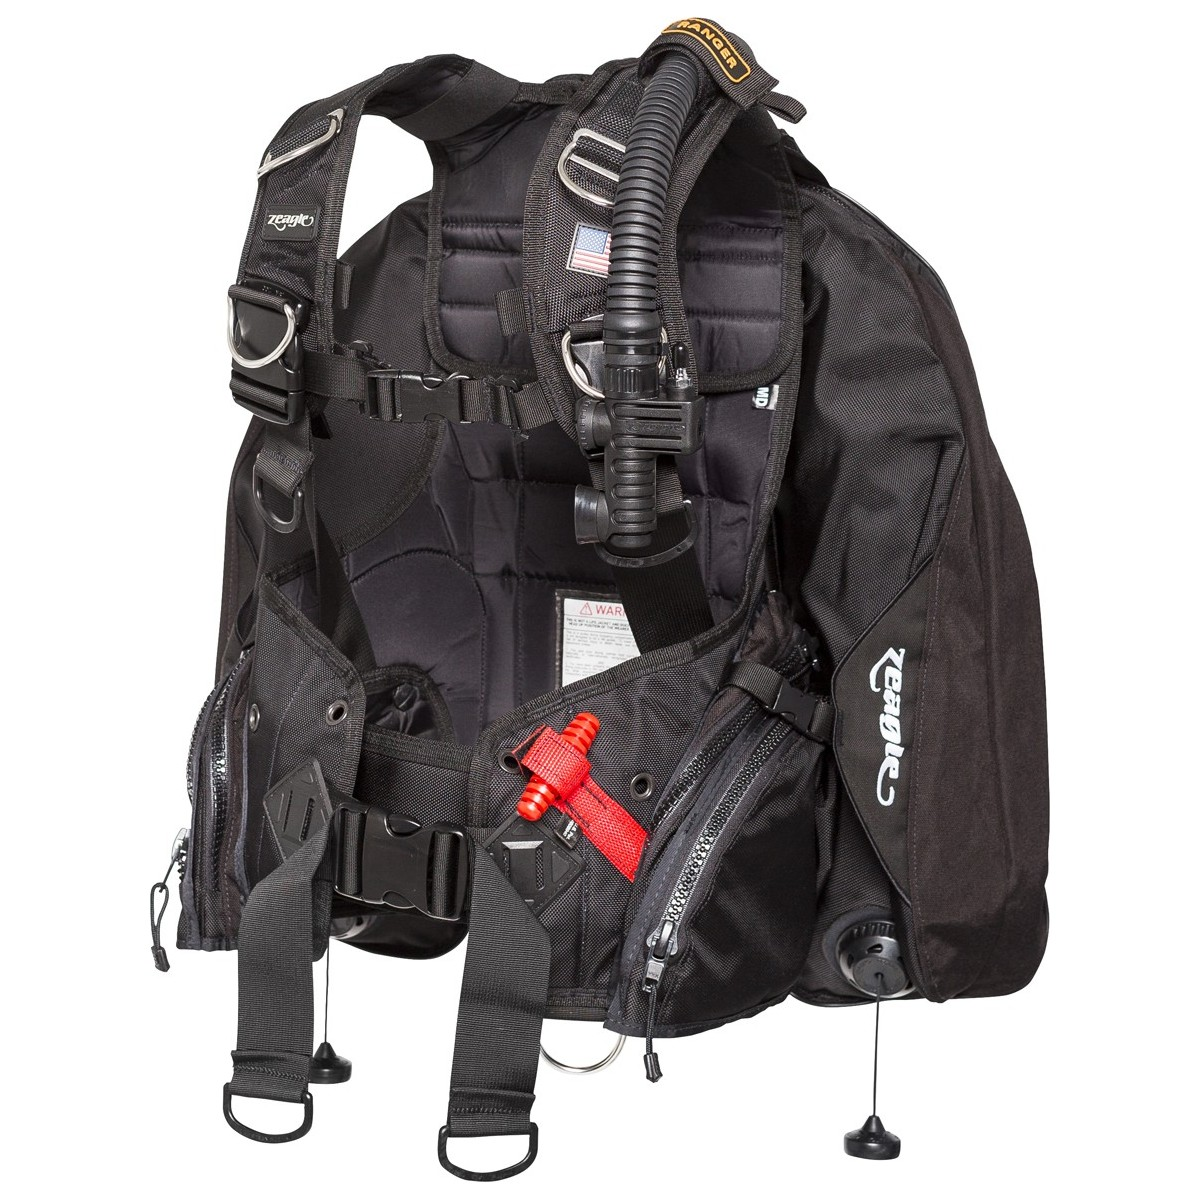 Zeagle Ranger Technical Scuba Diving BC For Scuba Divers